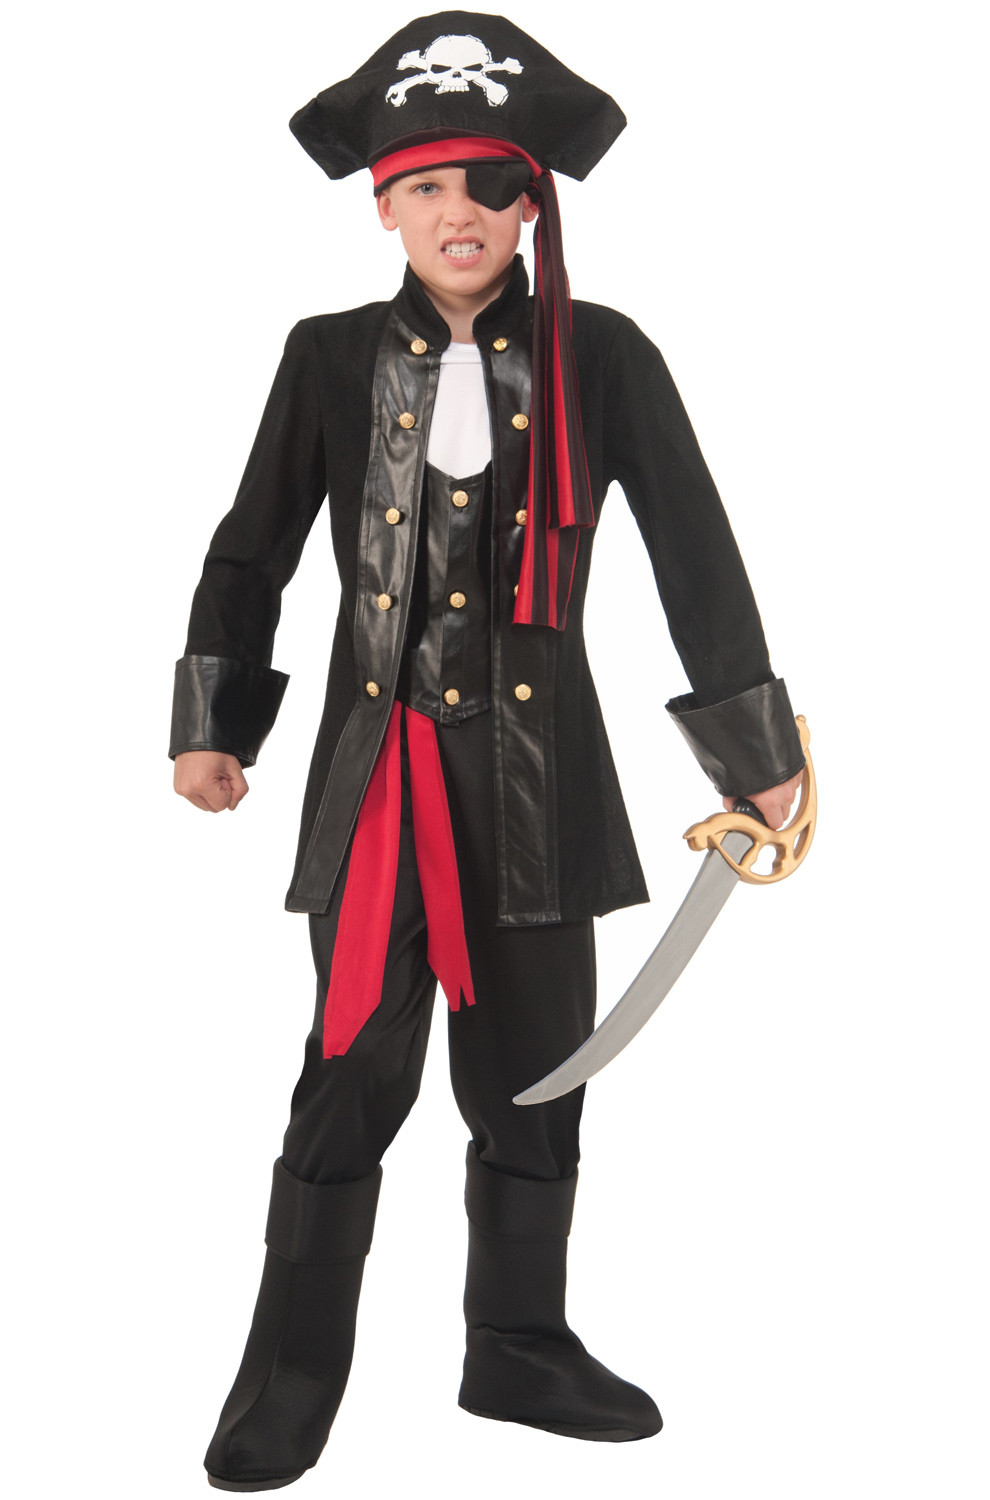 Seven Seas Pirate Child Costume (L) by Forum Novelties